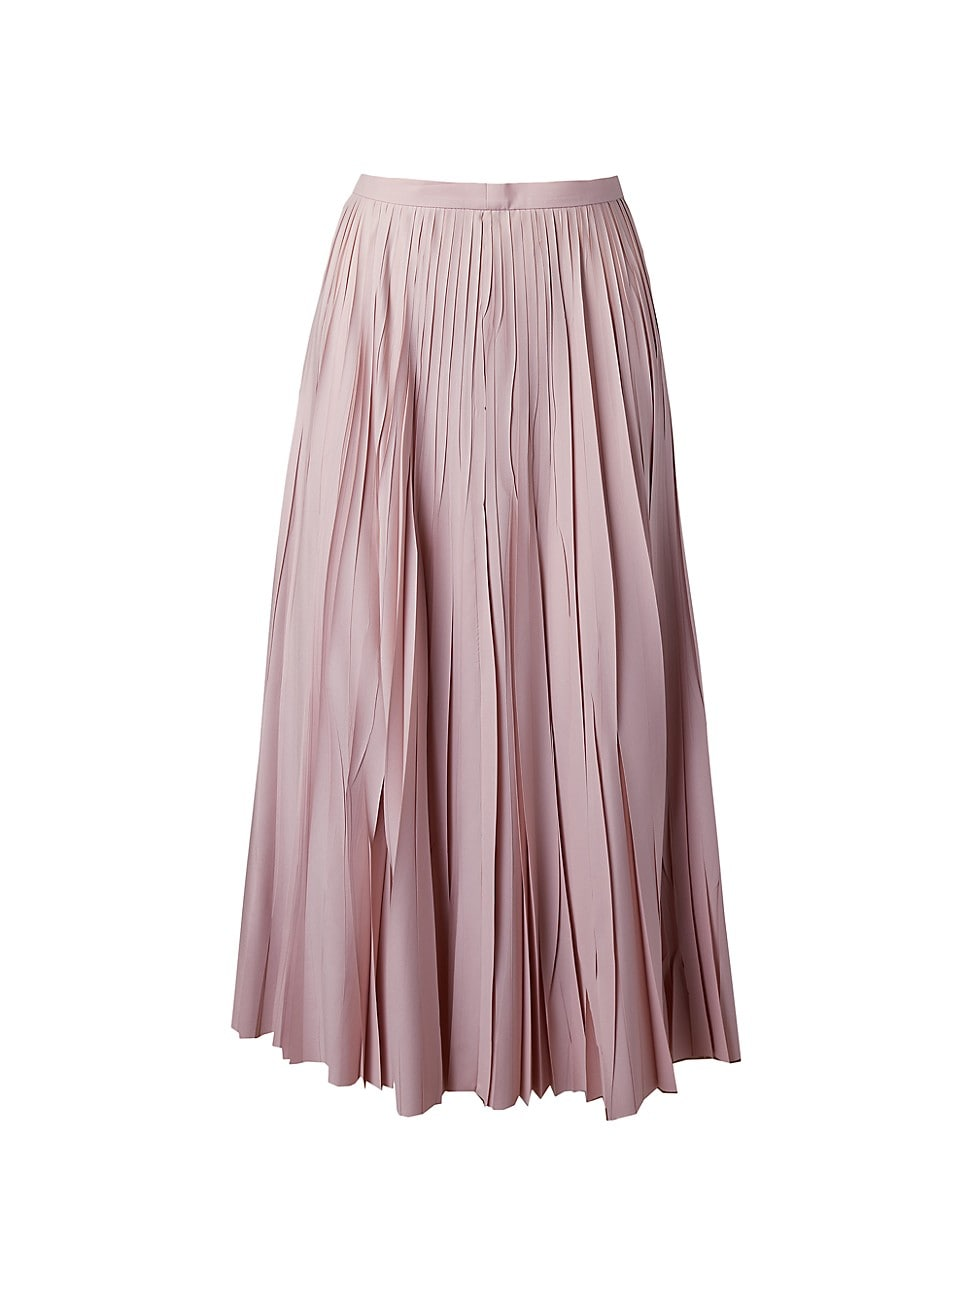 Akris Punto WOMEN'S CRUSHED SUNRAY PLISSÉ MIDI SKIRT